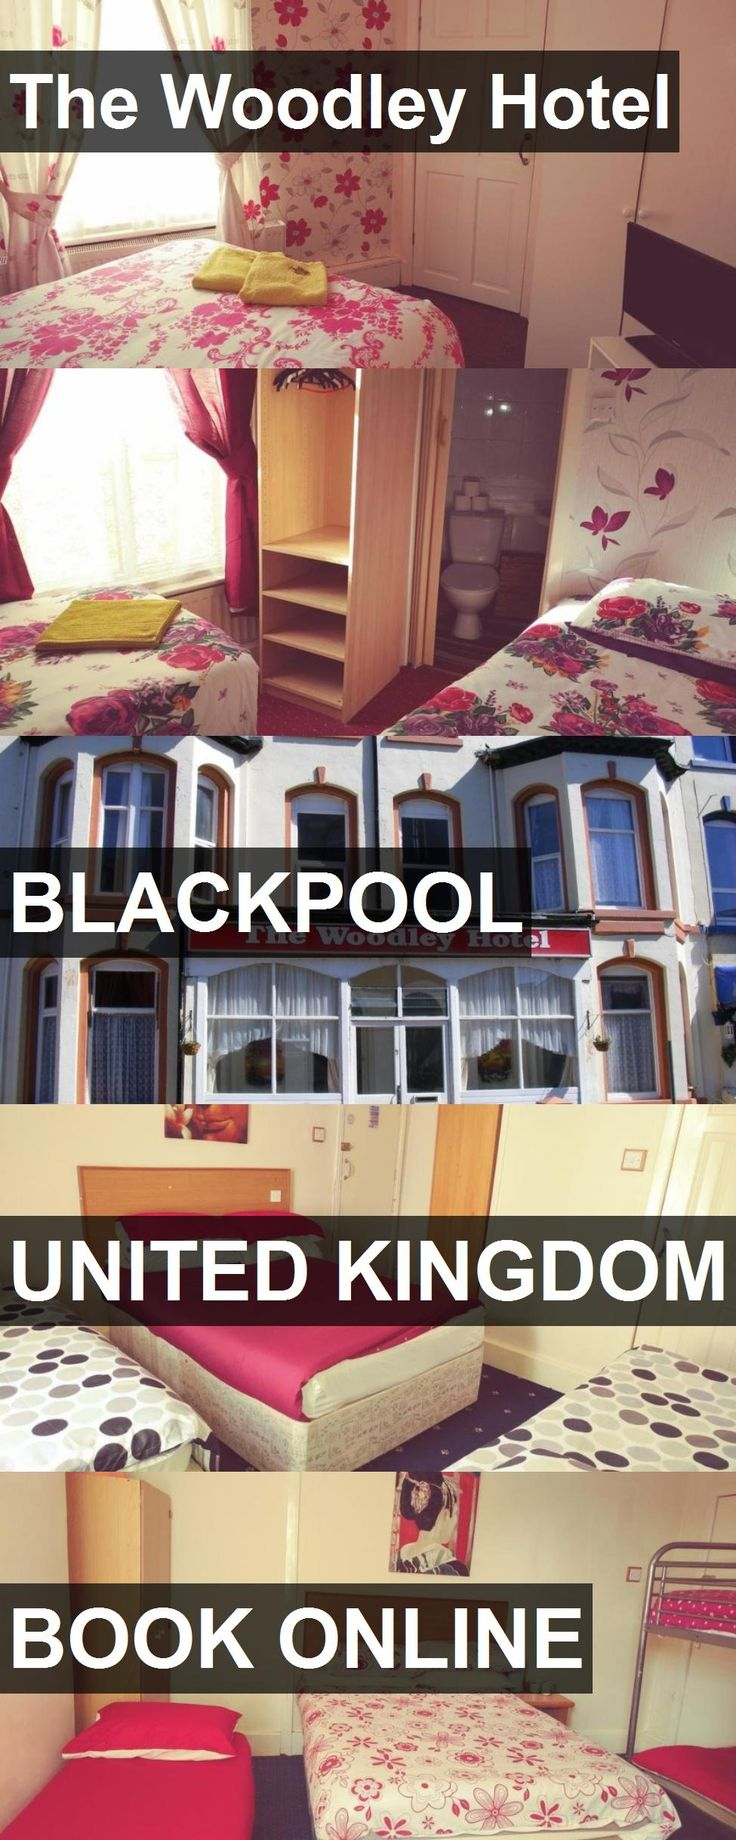 Hotel The Woodley Hotel in Blackpool, United Kingdom. For more information, photos, reviews and best prices please follow the link. #UnitedKingdom #Blackpool #TheWoodleyHotel #hotel #travel #vacation